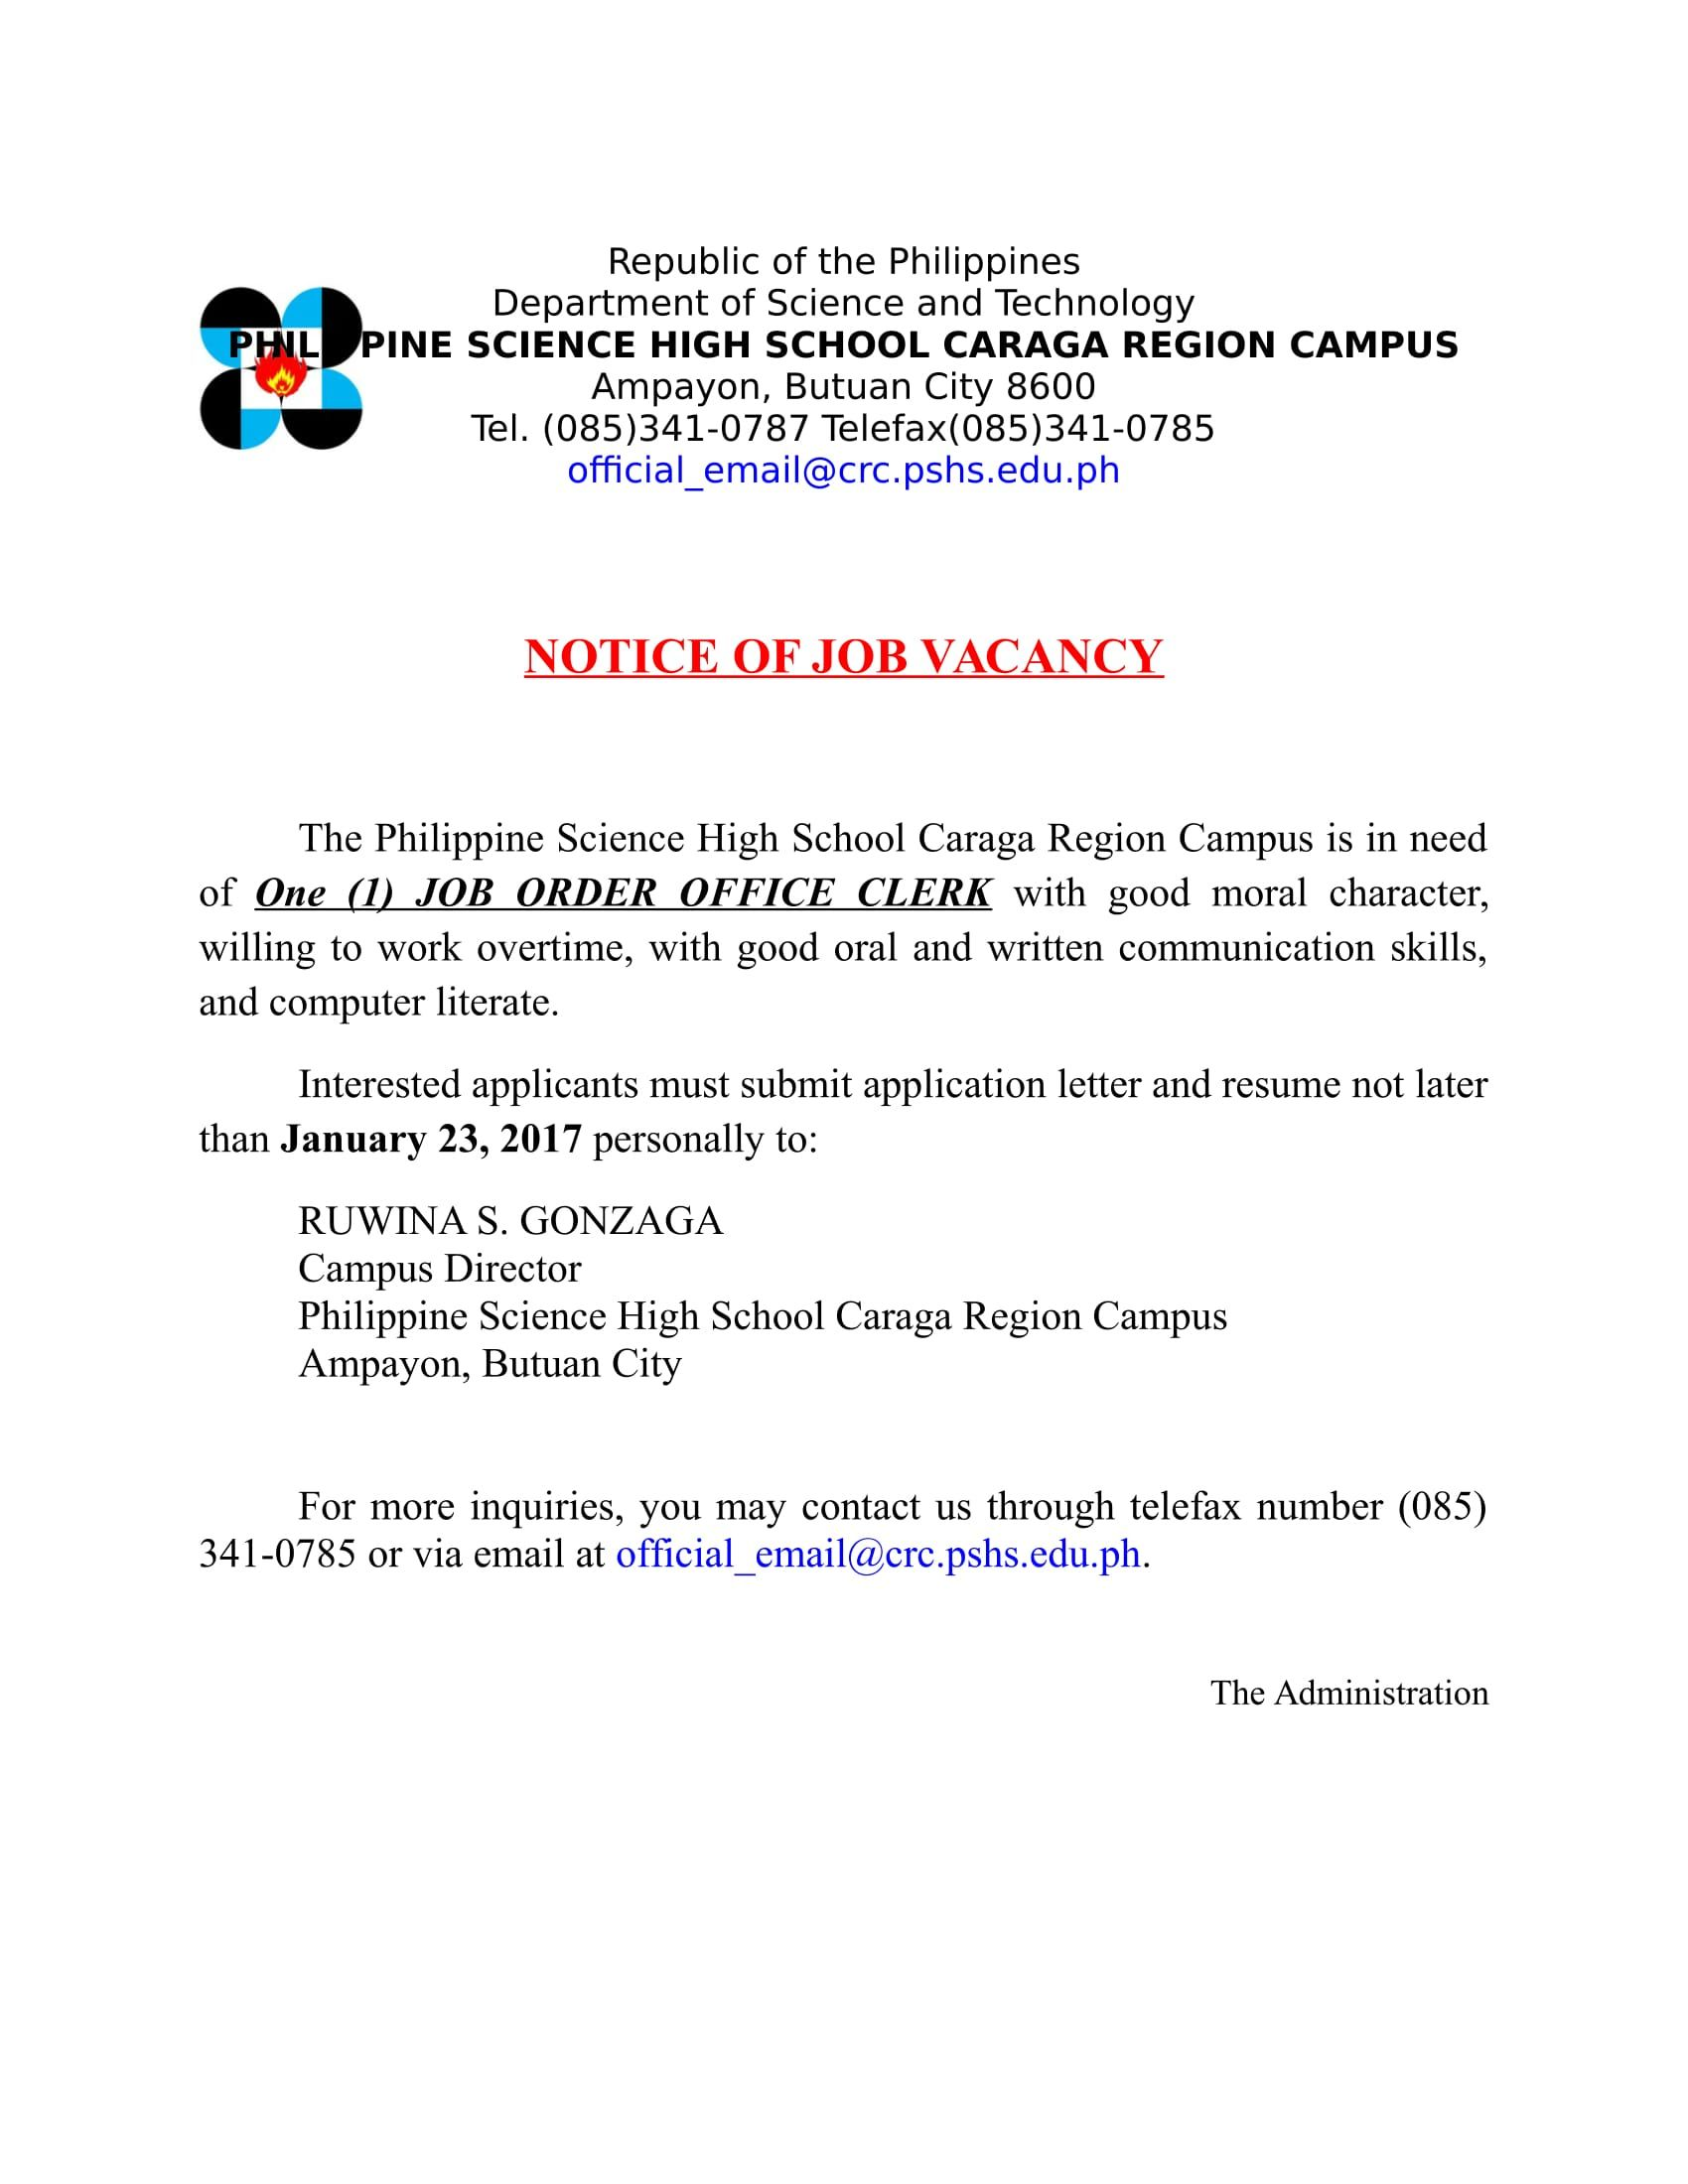 Philippine Science High School Caraga Region Campus Job Details